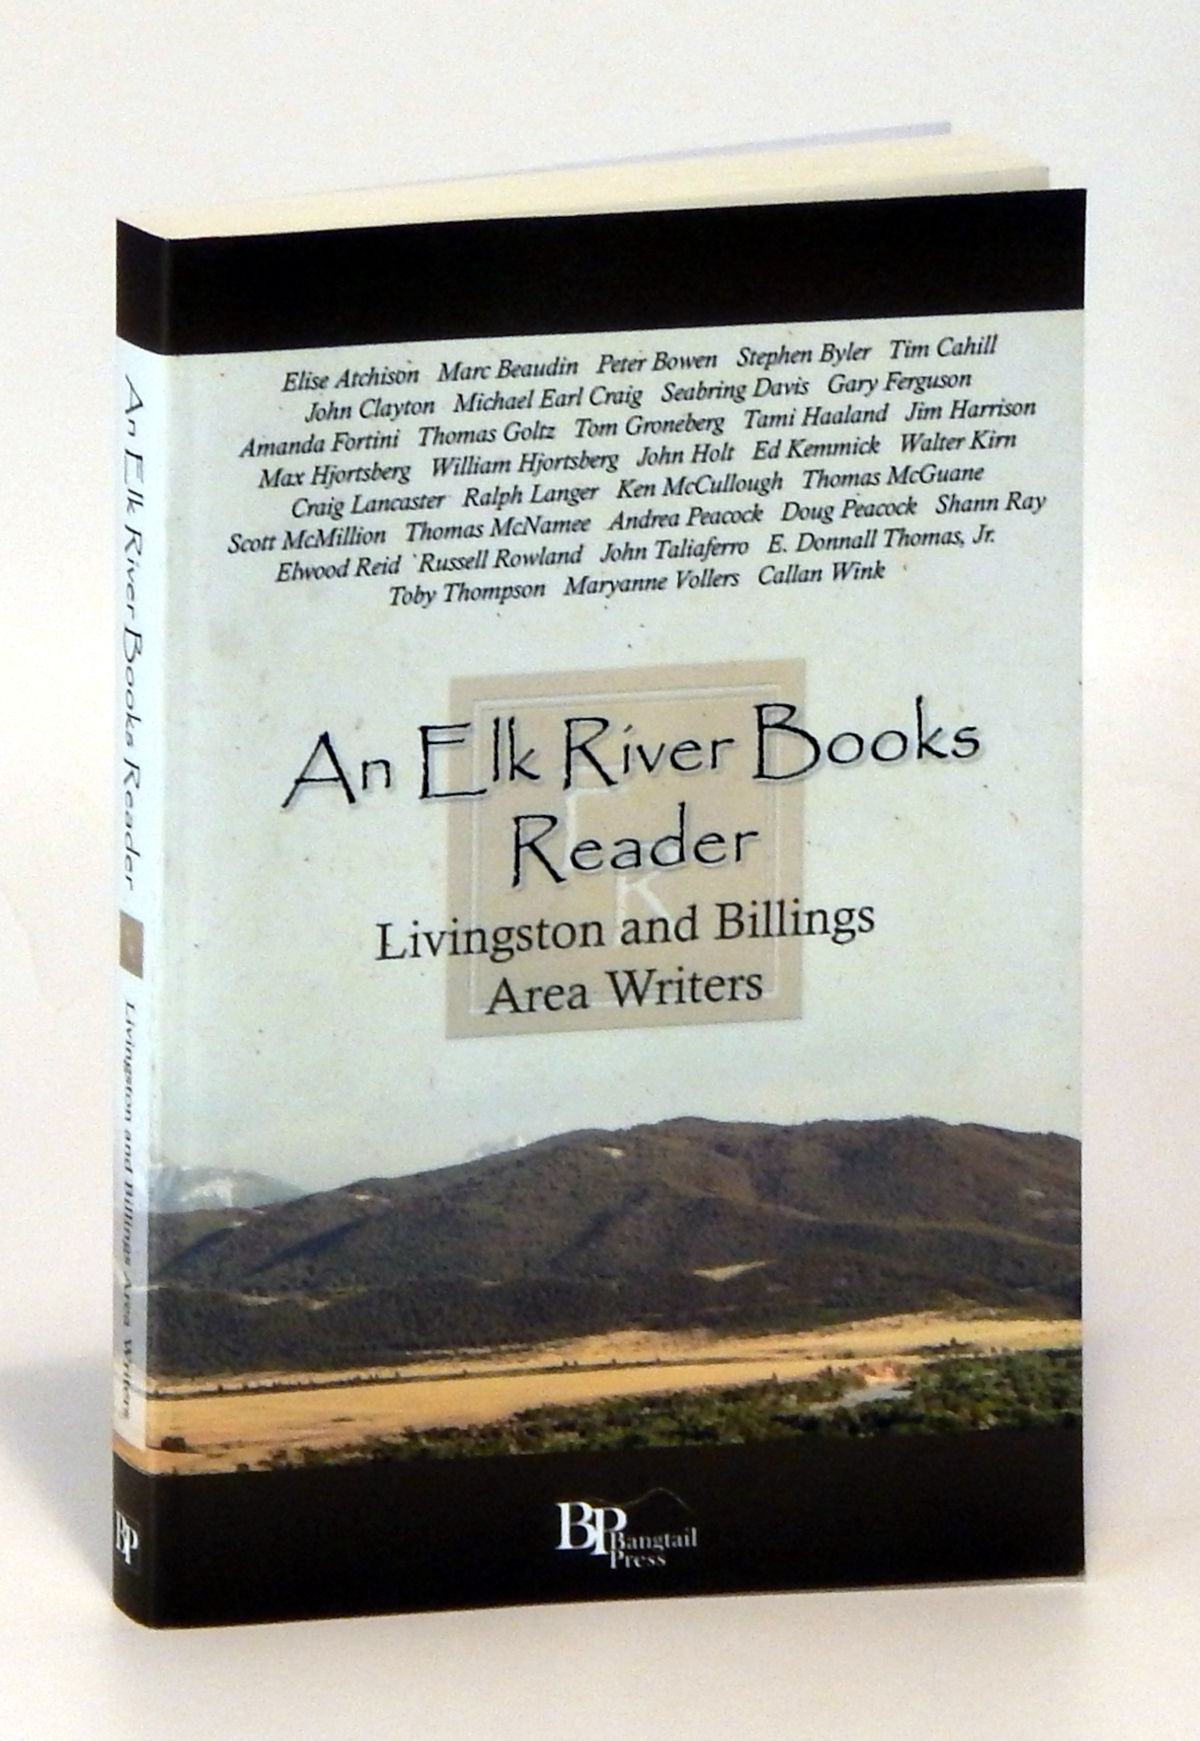 Image for An Elk River Books Reader: Livingston and Billings Area Writers